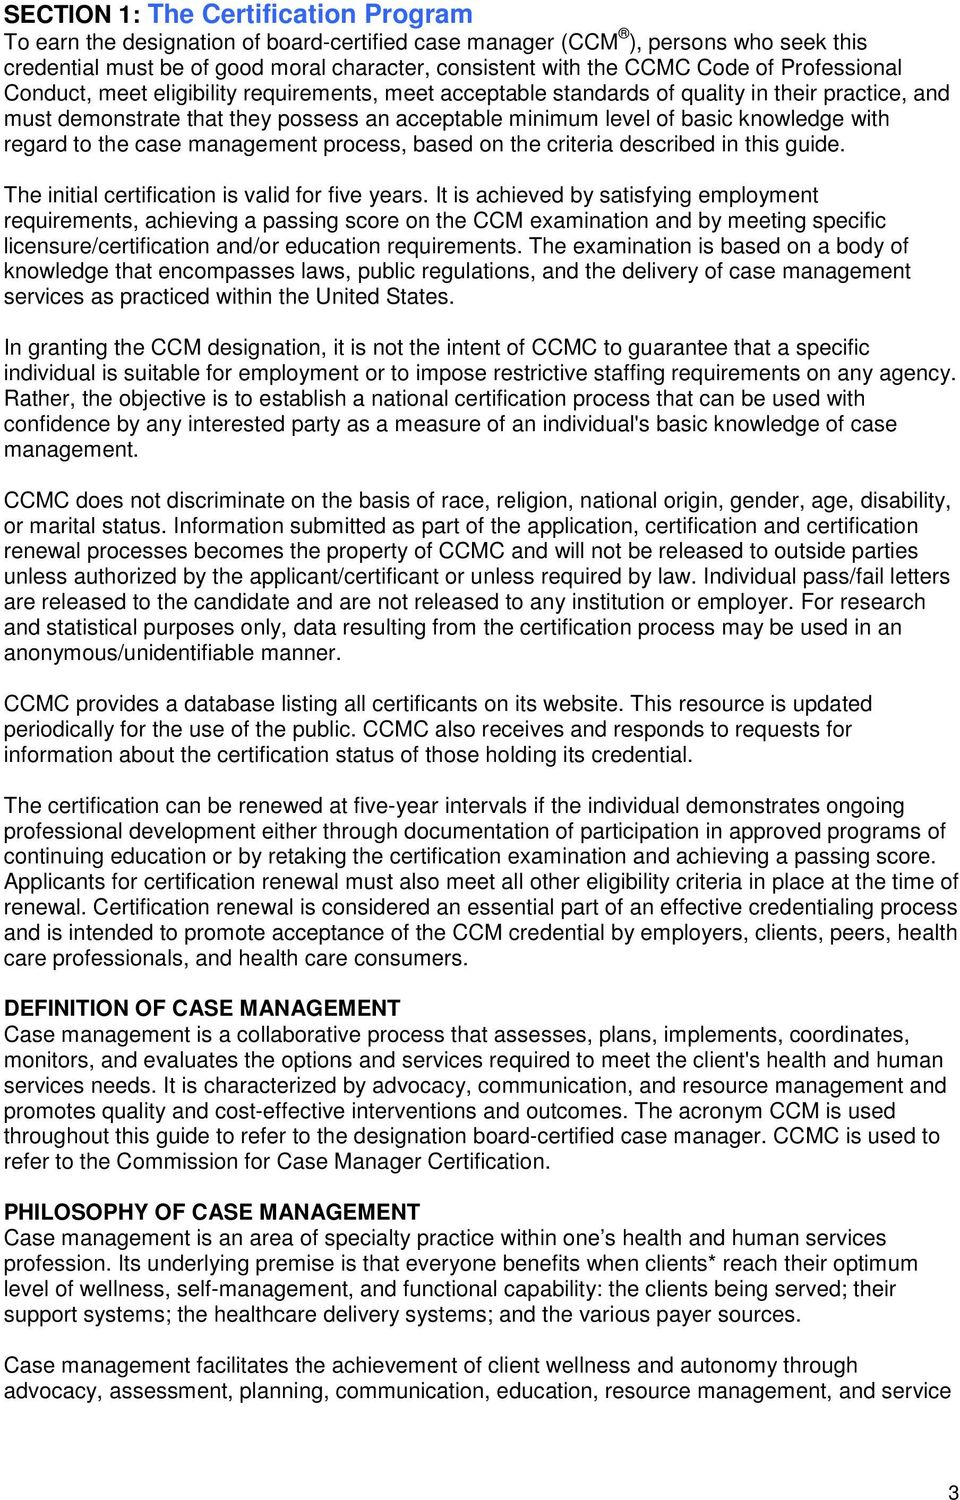 regard to the case management process, based on the criteria described in this guide. The initial certification is valid for five years.